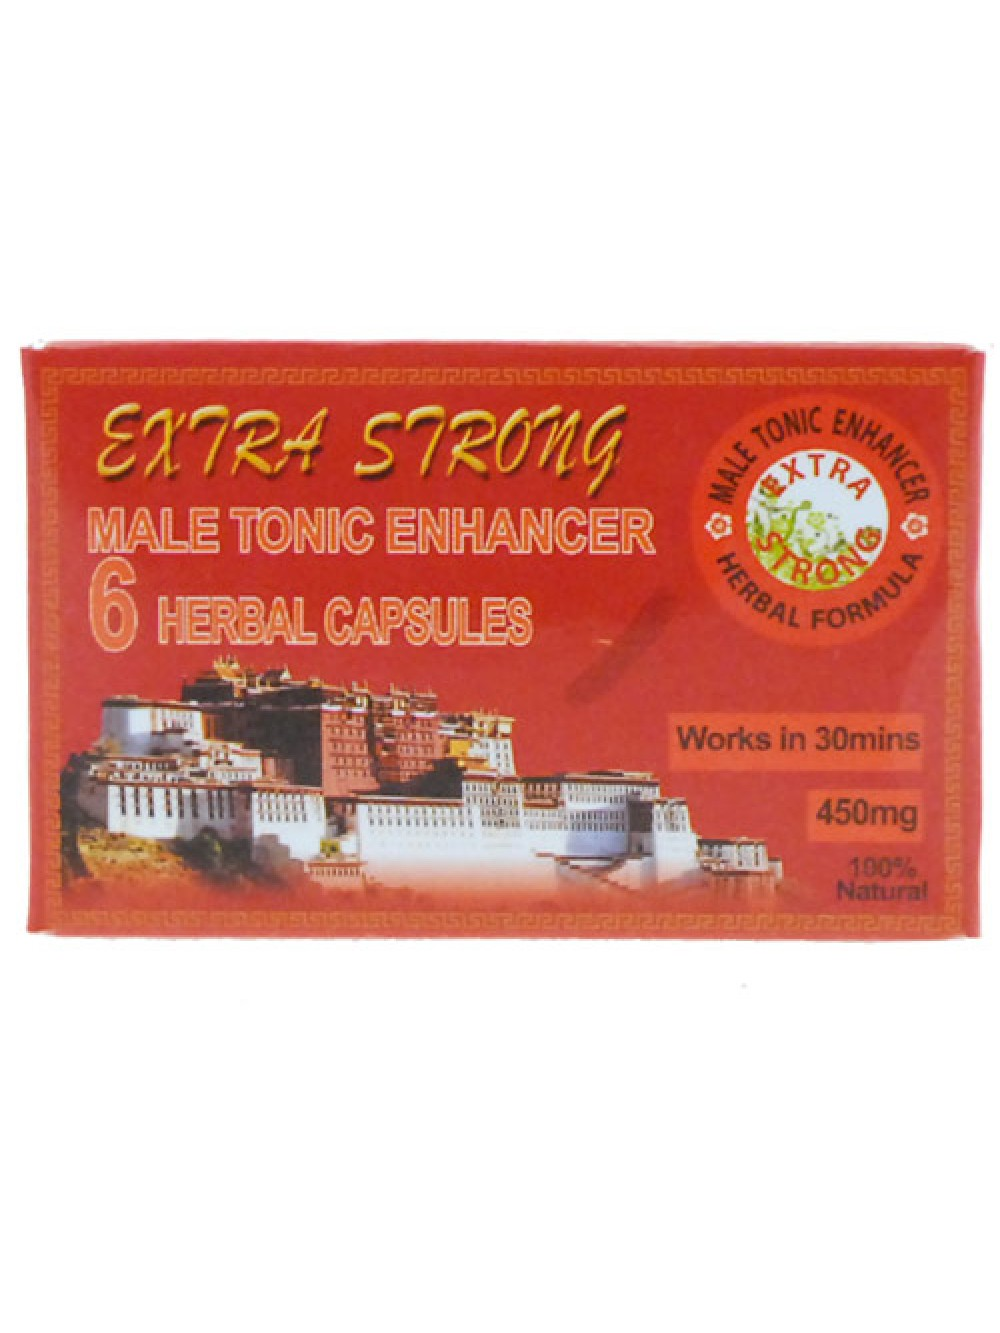 Extra Strong Male Tonic Enhancer 6 Herbal Capsules